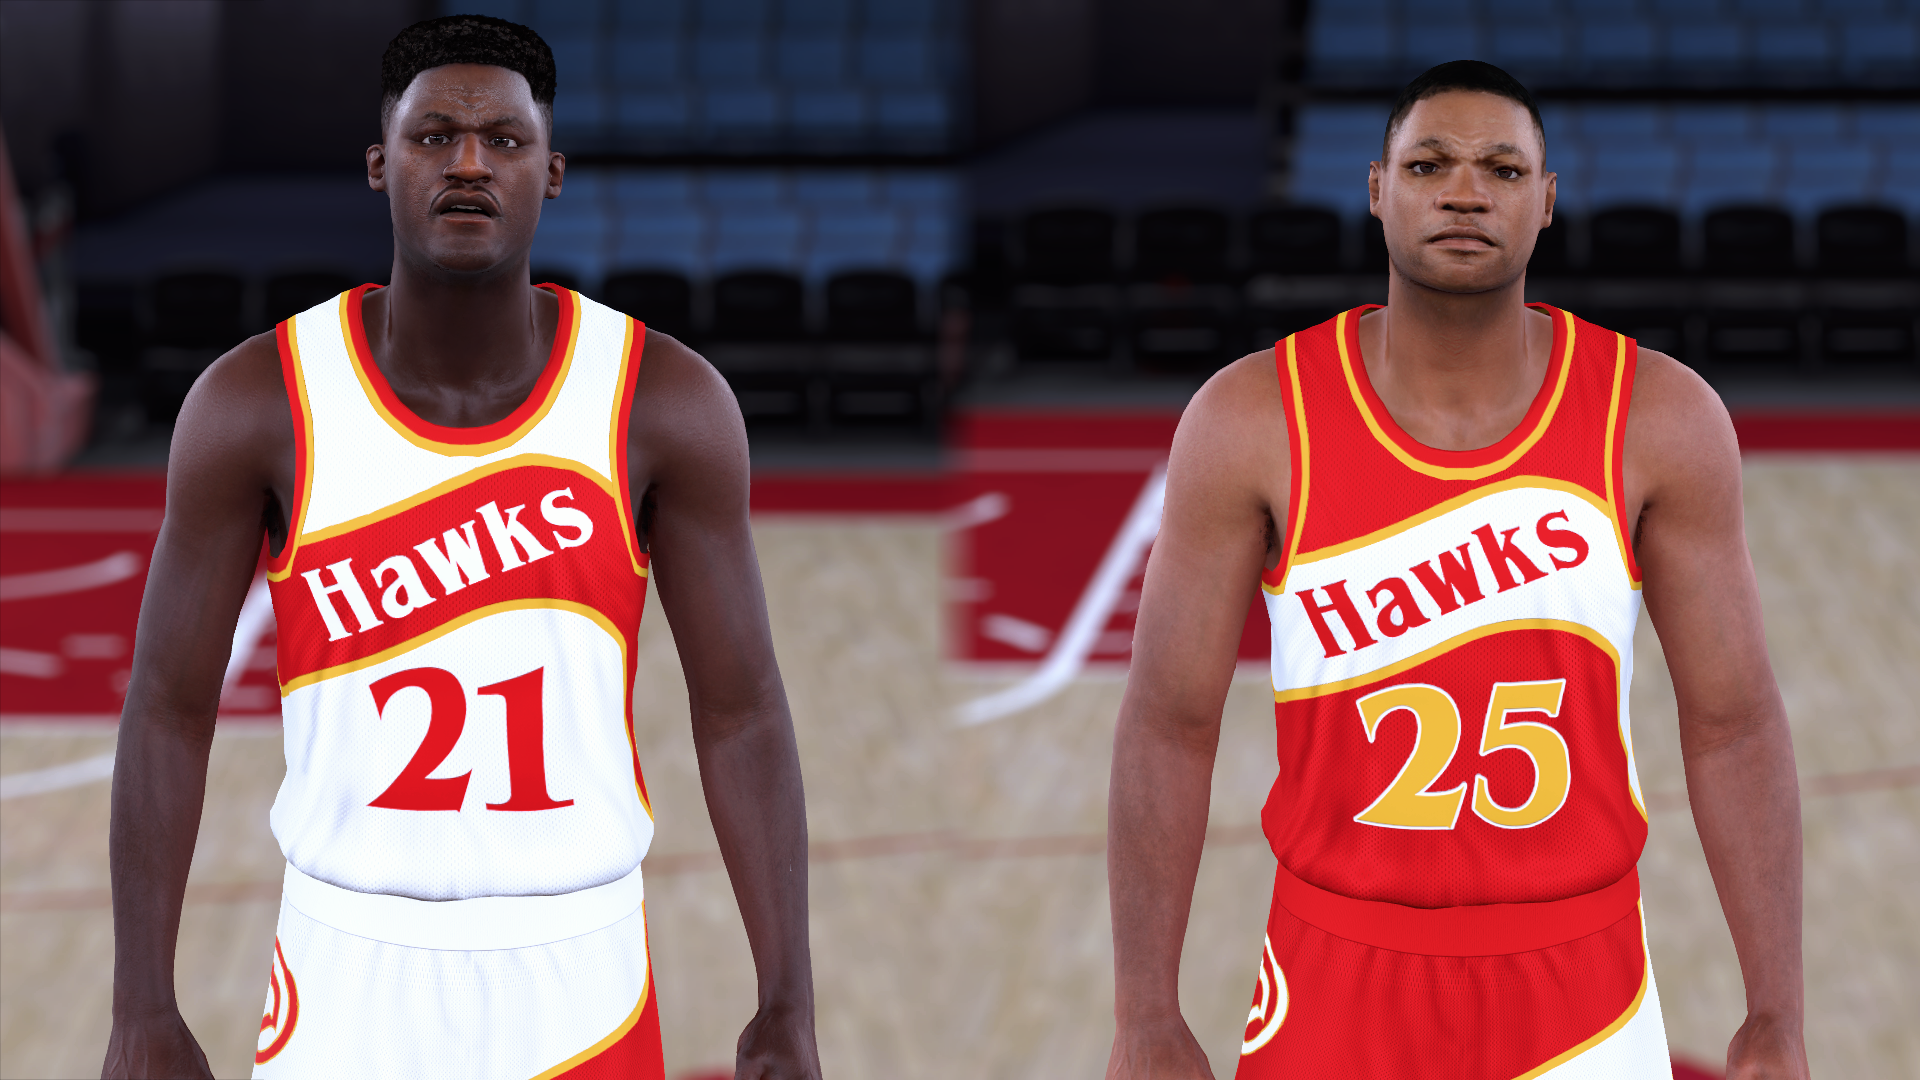 1985-1986 Hawks Jerseys - PeacemanNOT